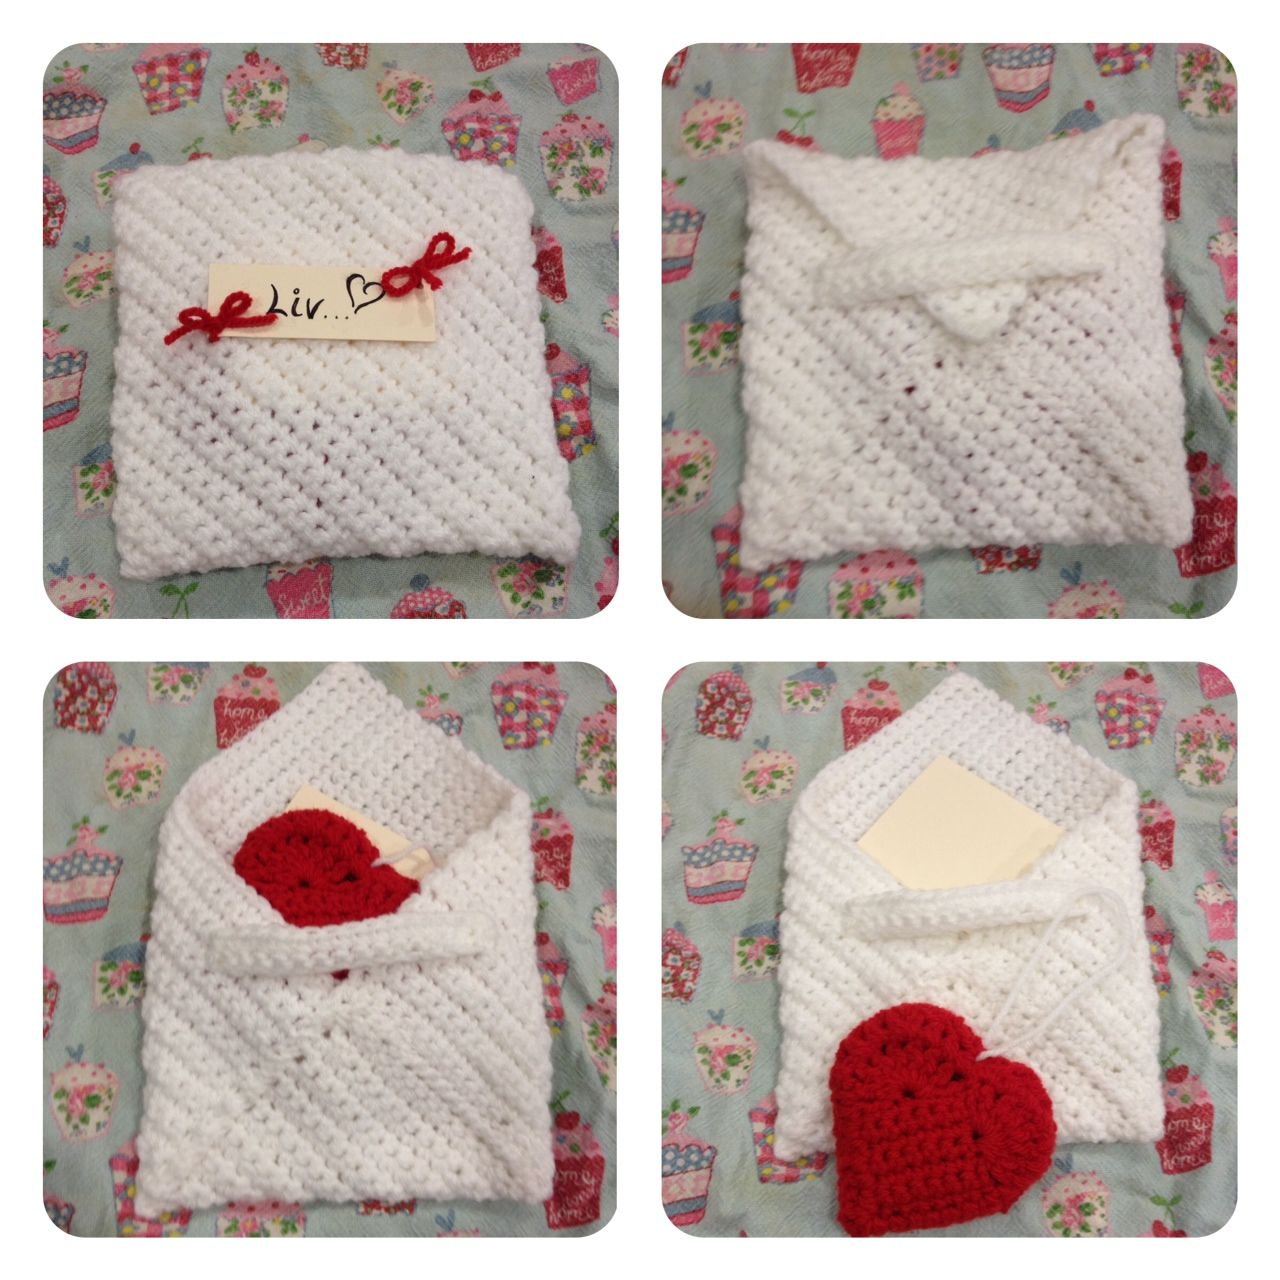 Cute Valentines gift idea! Crochet envelope with crochet heart decoration inside.  Made by Zoe <3